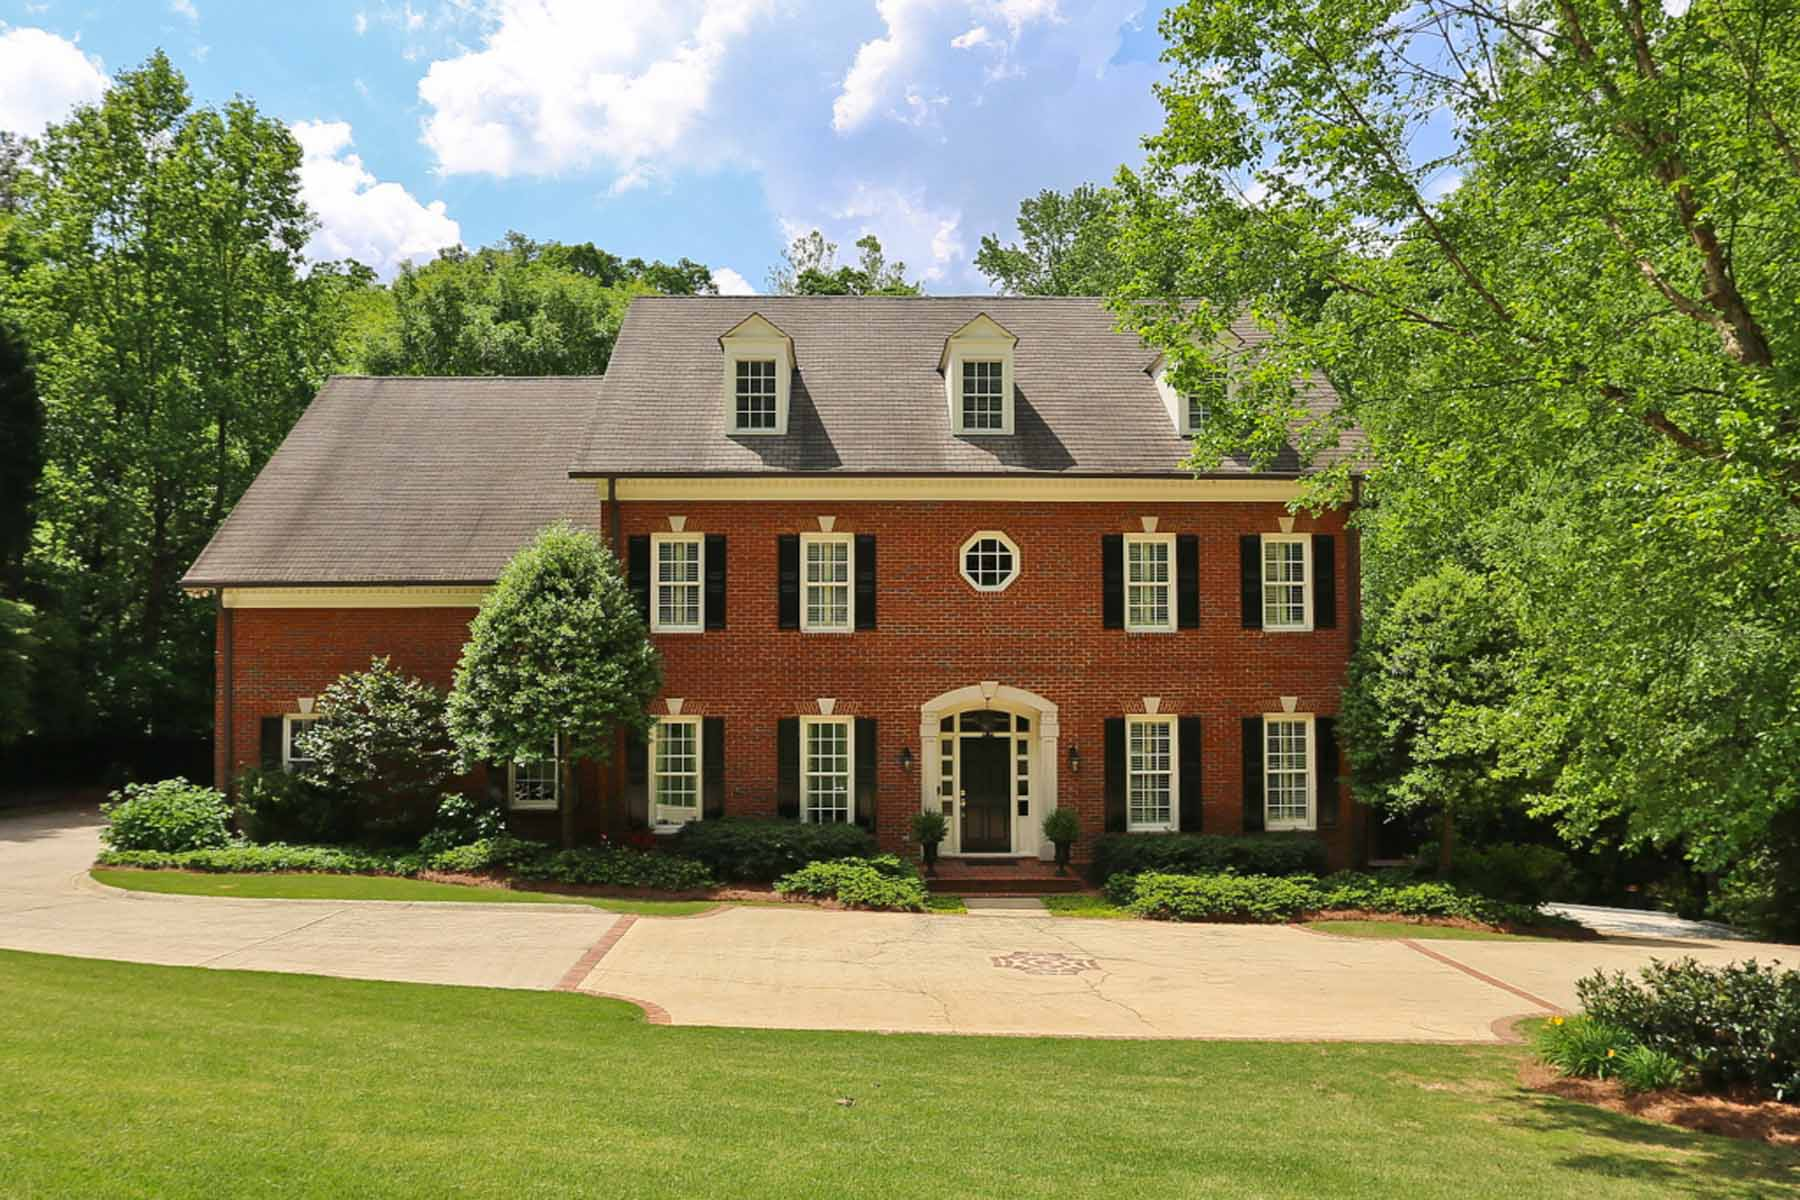 Single Family Home for Sale at Stunning Mt. Paran Residence 1578 Musket Ridge NW Atlanta, Georgia, 30327 United States